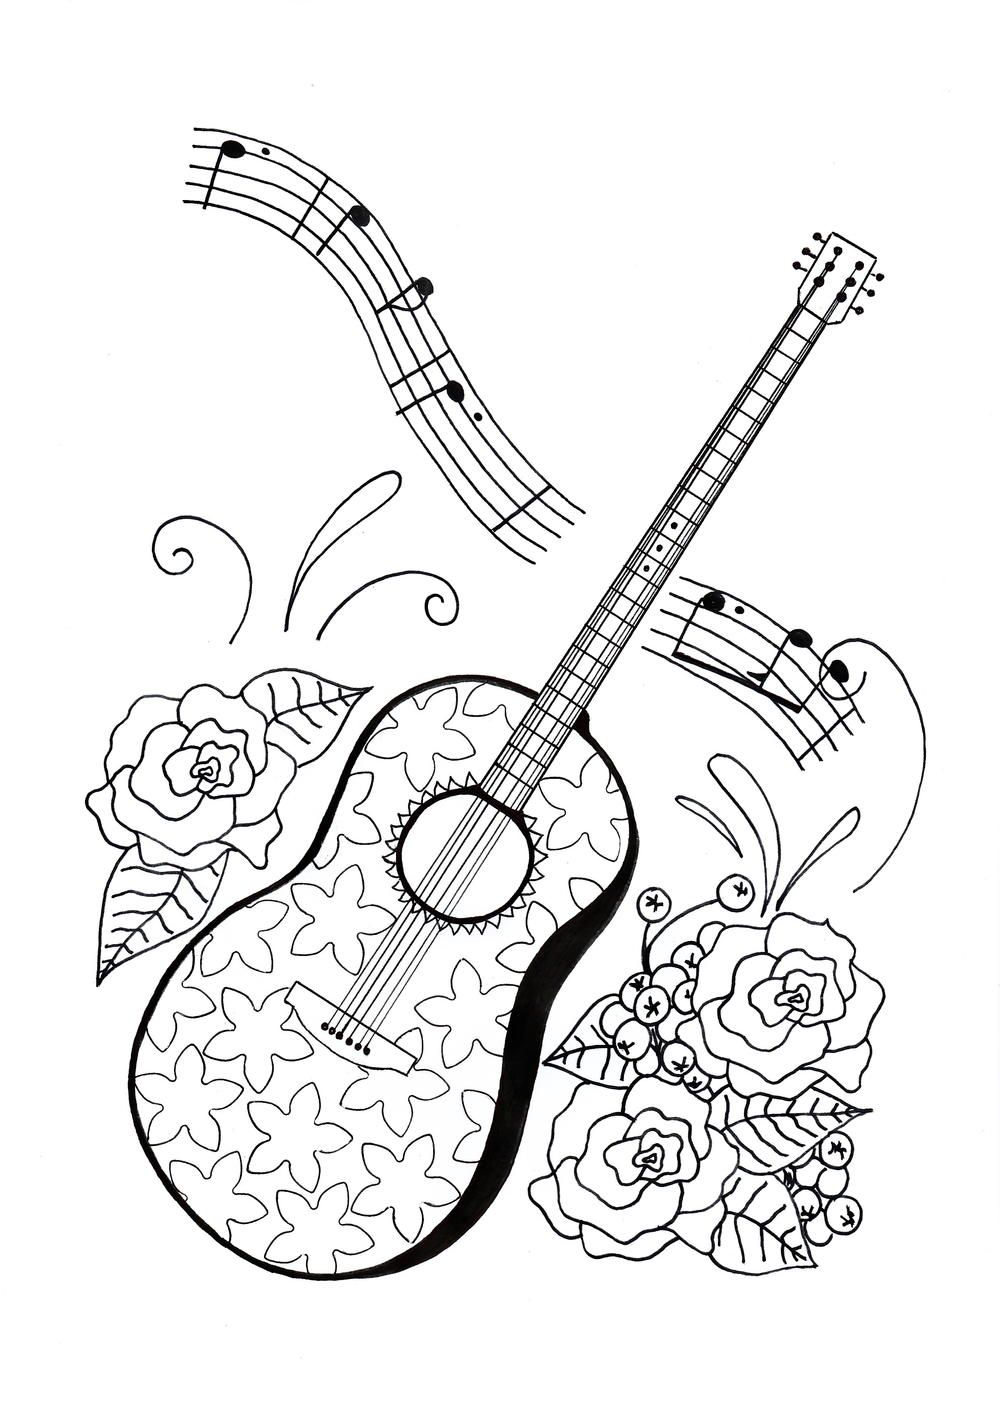 for the love of music adult coloring page | adult coloring, dawn